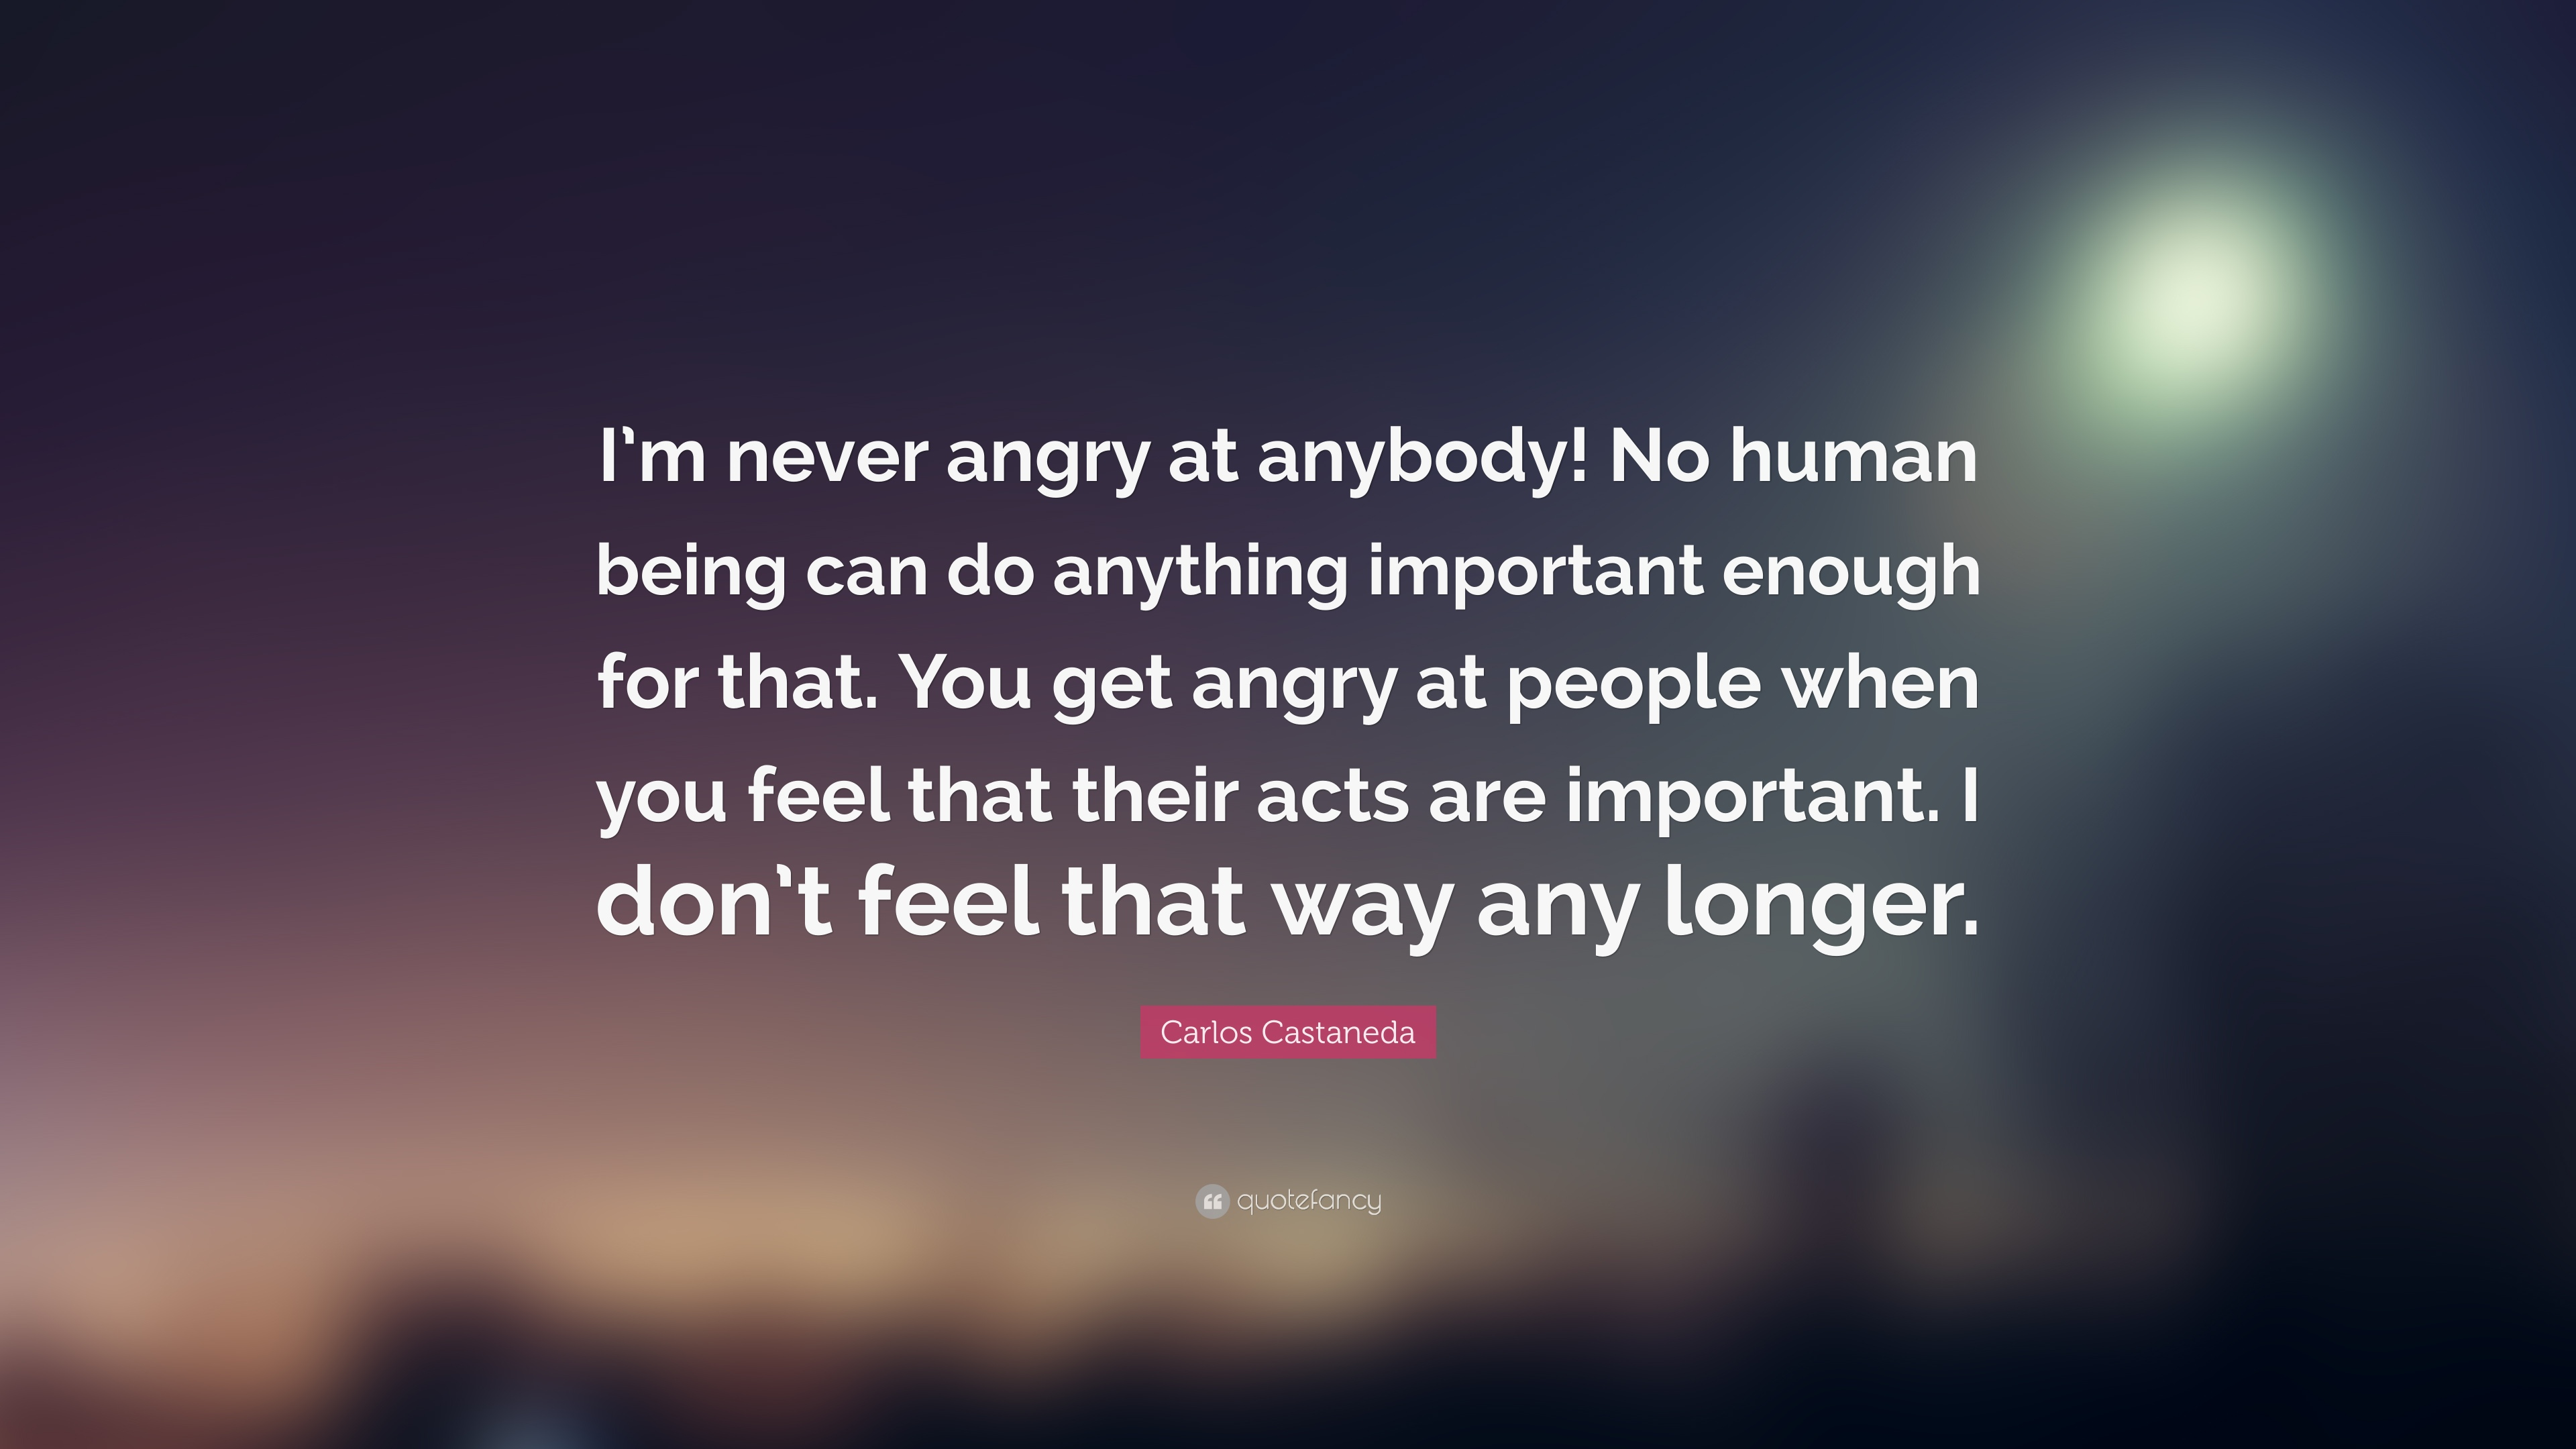 Carlos castaneda quote im never angry at anybody no human being